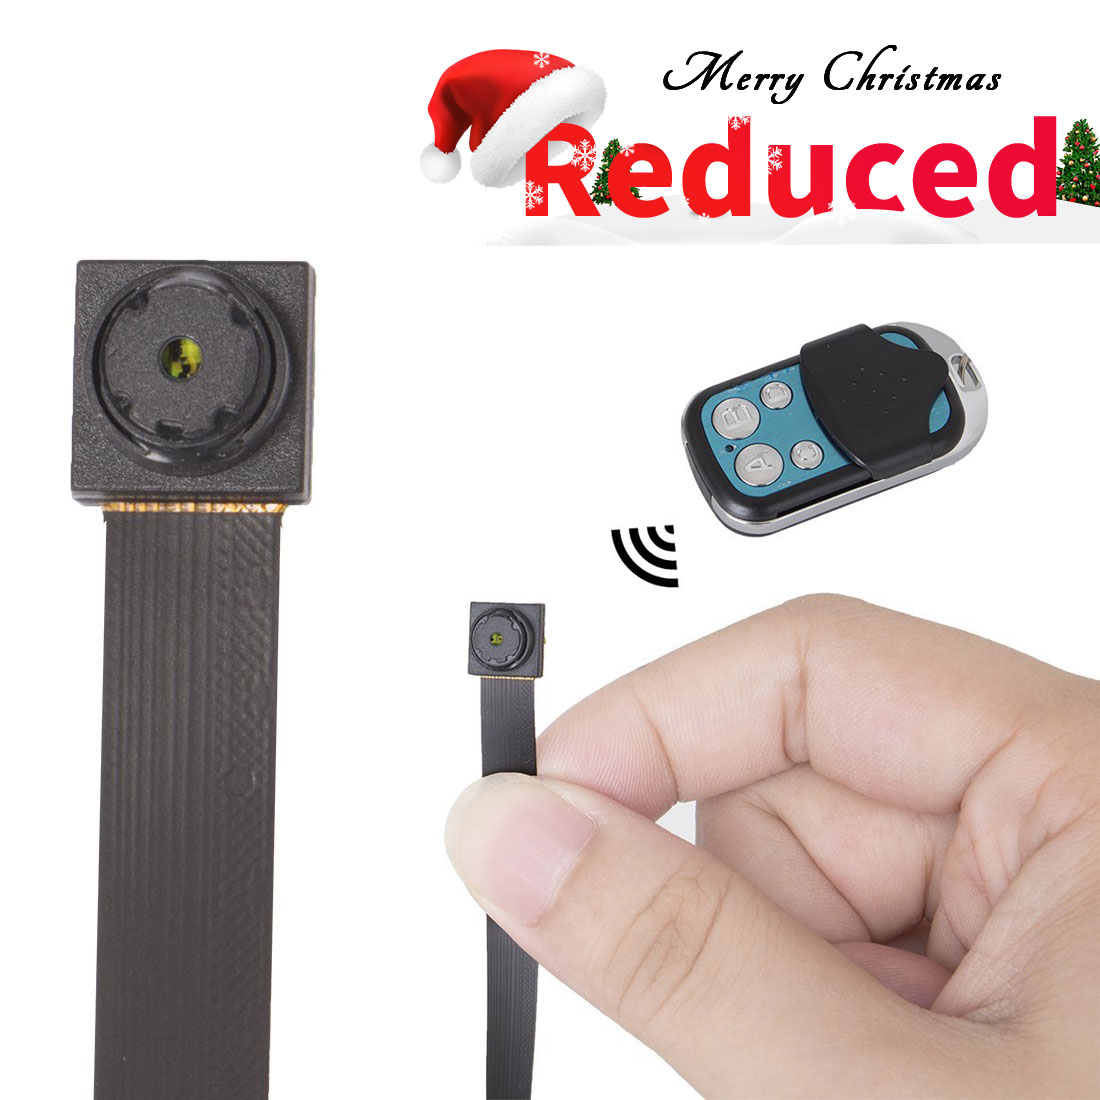 FREDI HD 1080P/720P Mini Super Small Portable DIY Hidden Spy Camera Loop Video Recording Video Recorder Motion Activated Security DVR with a remote controller